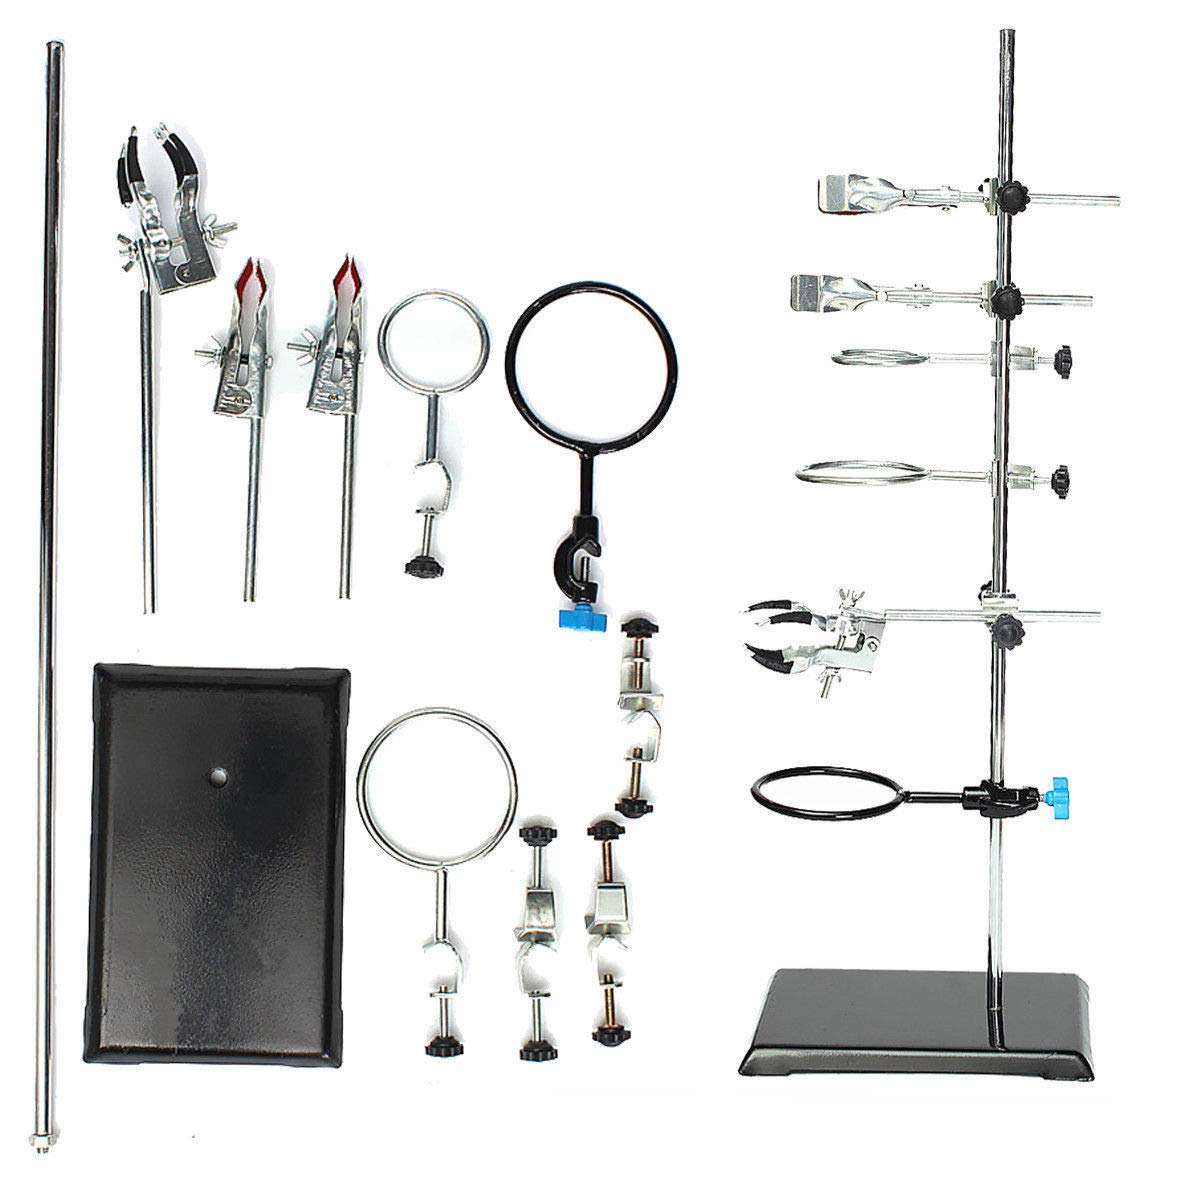 Modern Chemistry Laboratory Stands Set 600MM Lab Flask Support Set Lab Support Flask Clamp Clips